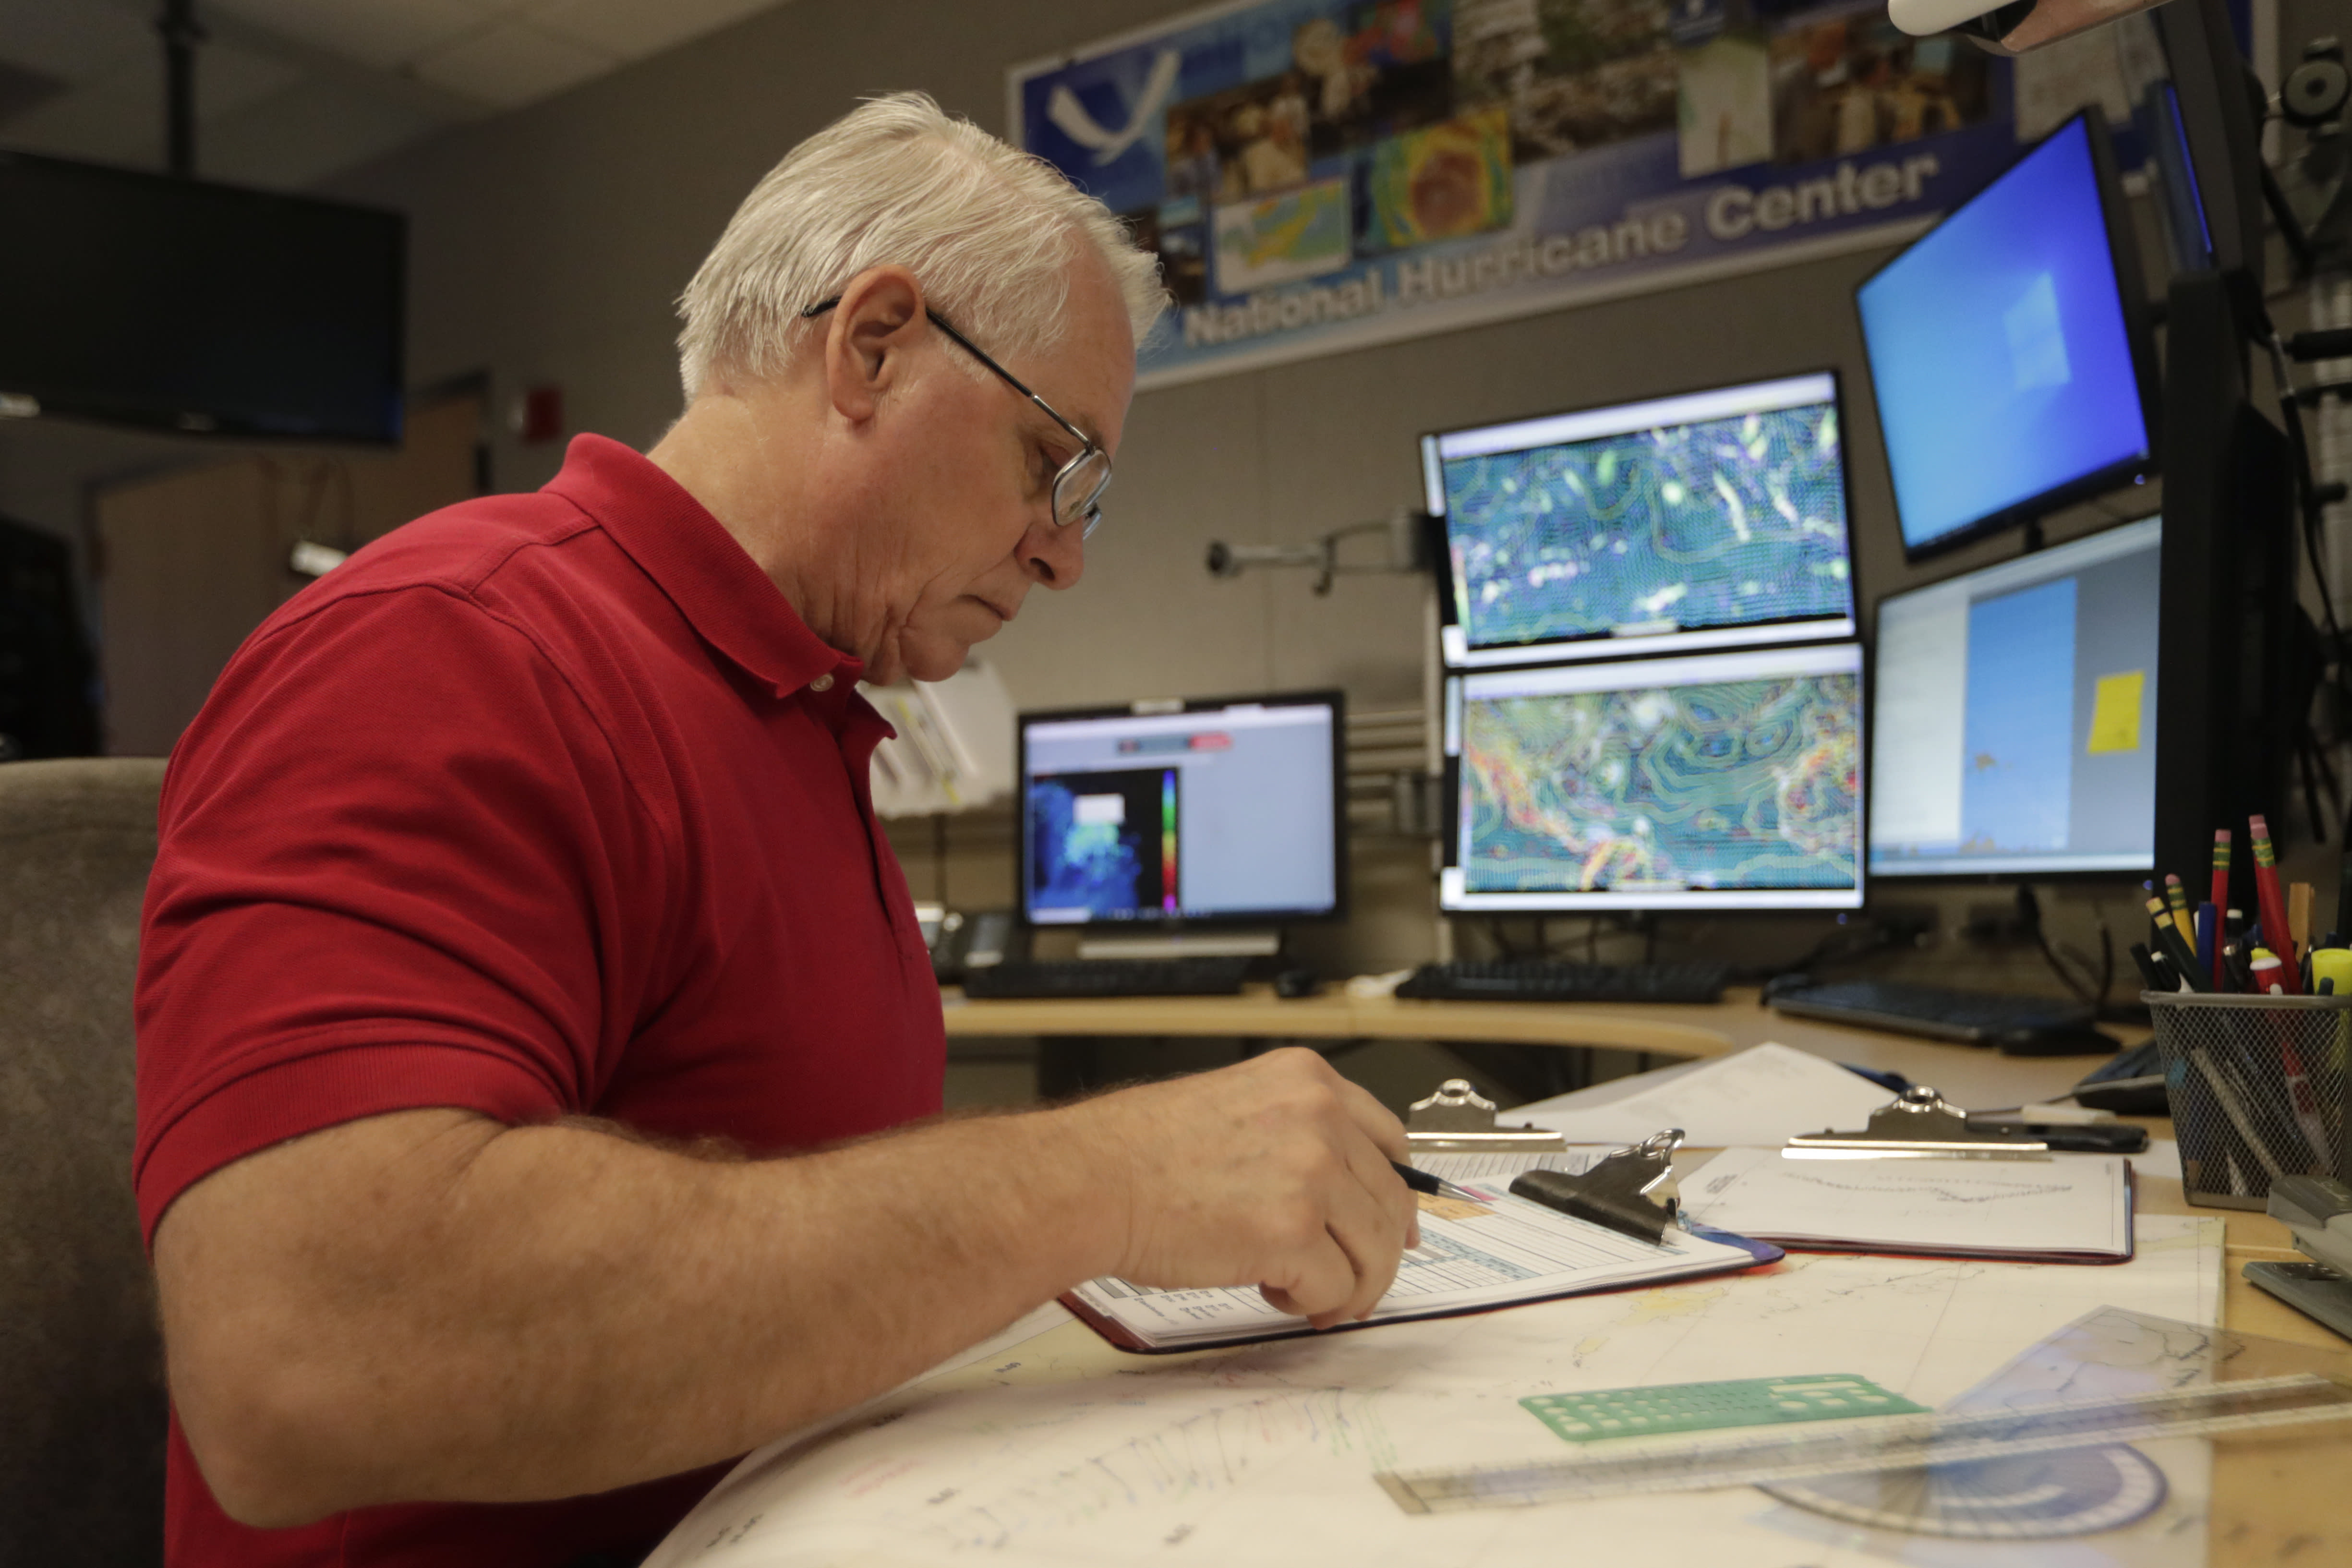 Senior hurricane specialist Stacy Stewart monitors the progress of Tropical Storm Dorian at the National Hurricane Center, Tuesday, Aug. 27, 2019, in Miami. (AP Photo/Lynne Sladky)